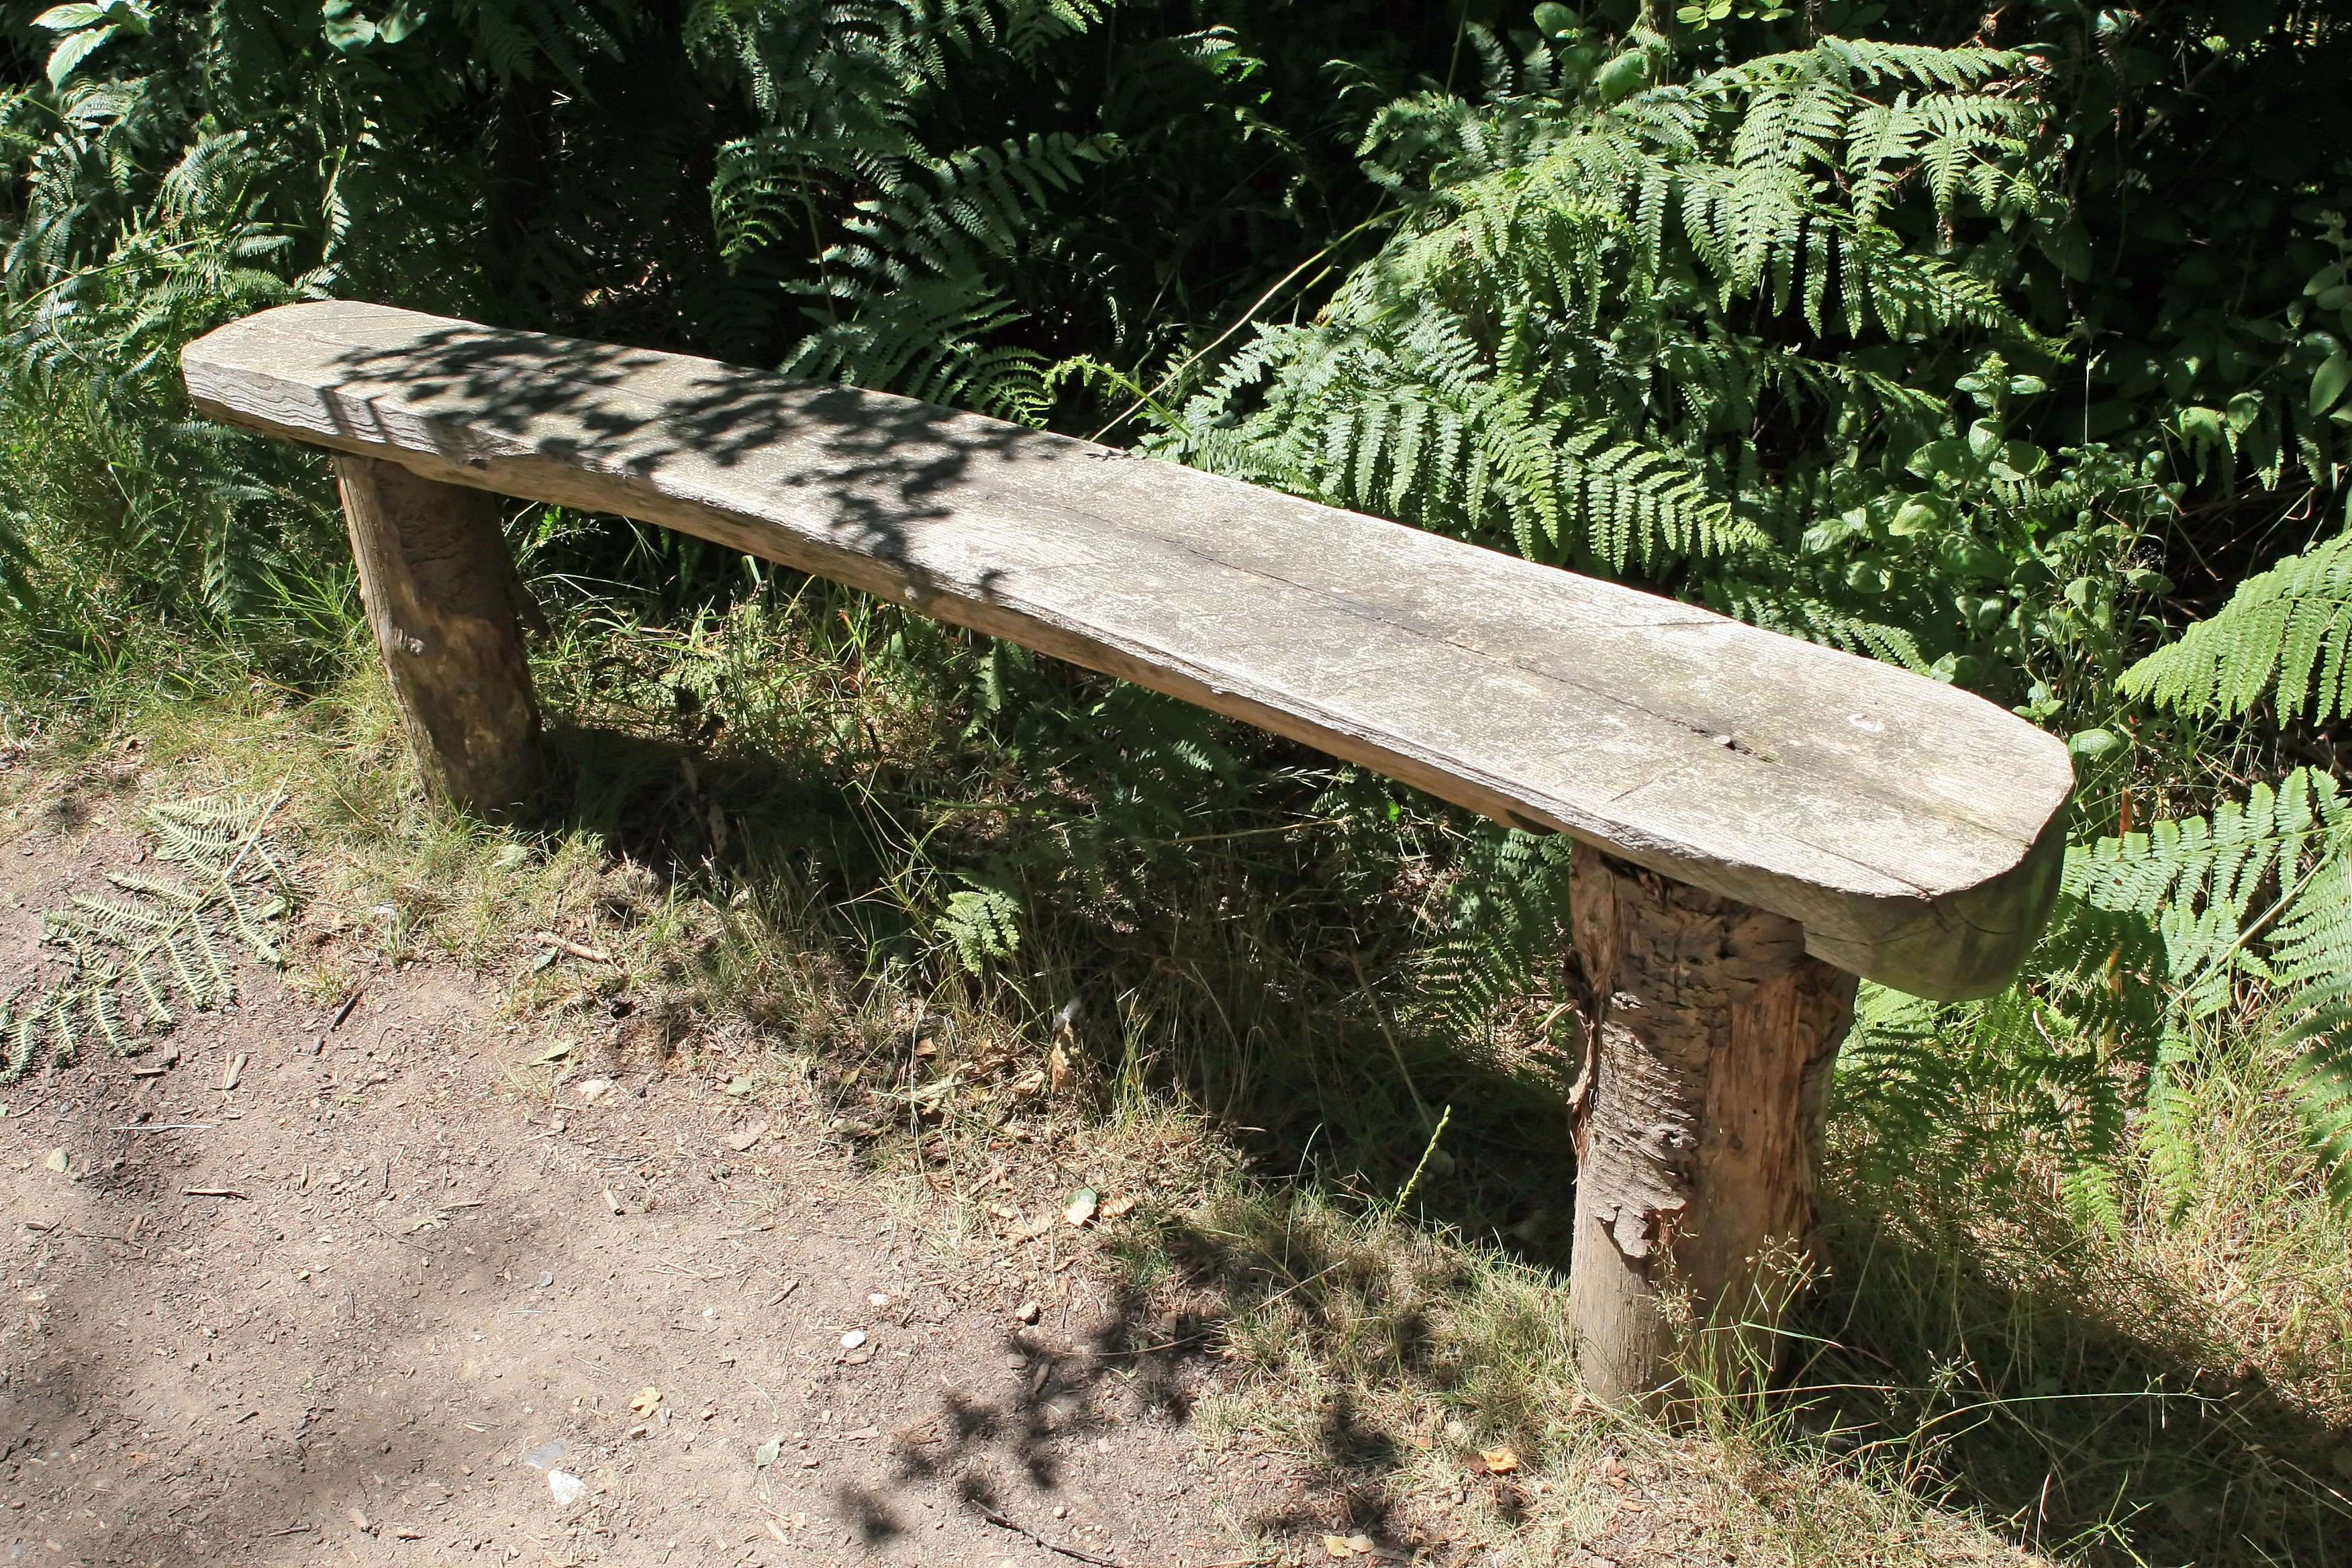 Bench, Sit, Wild, Wood, Wooden, HQ Photo